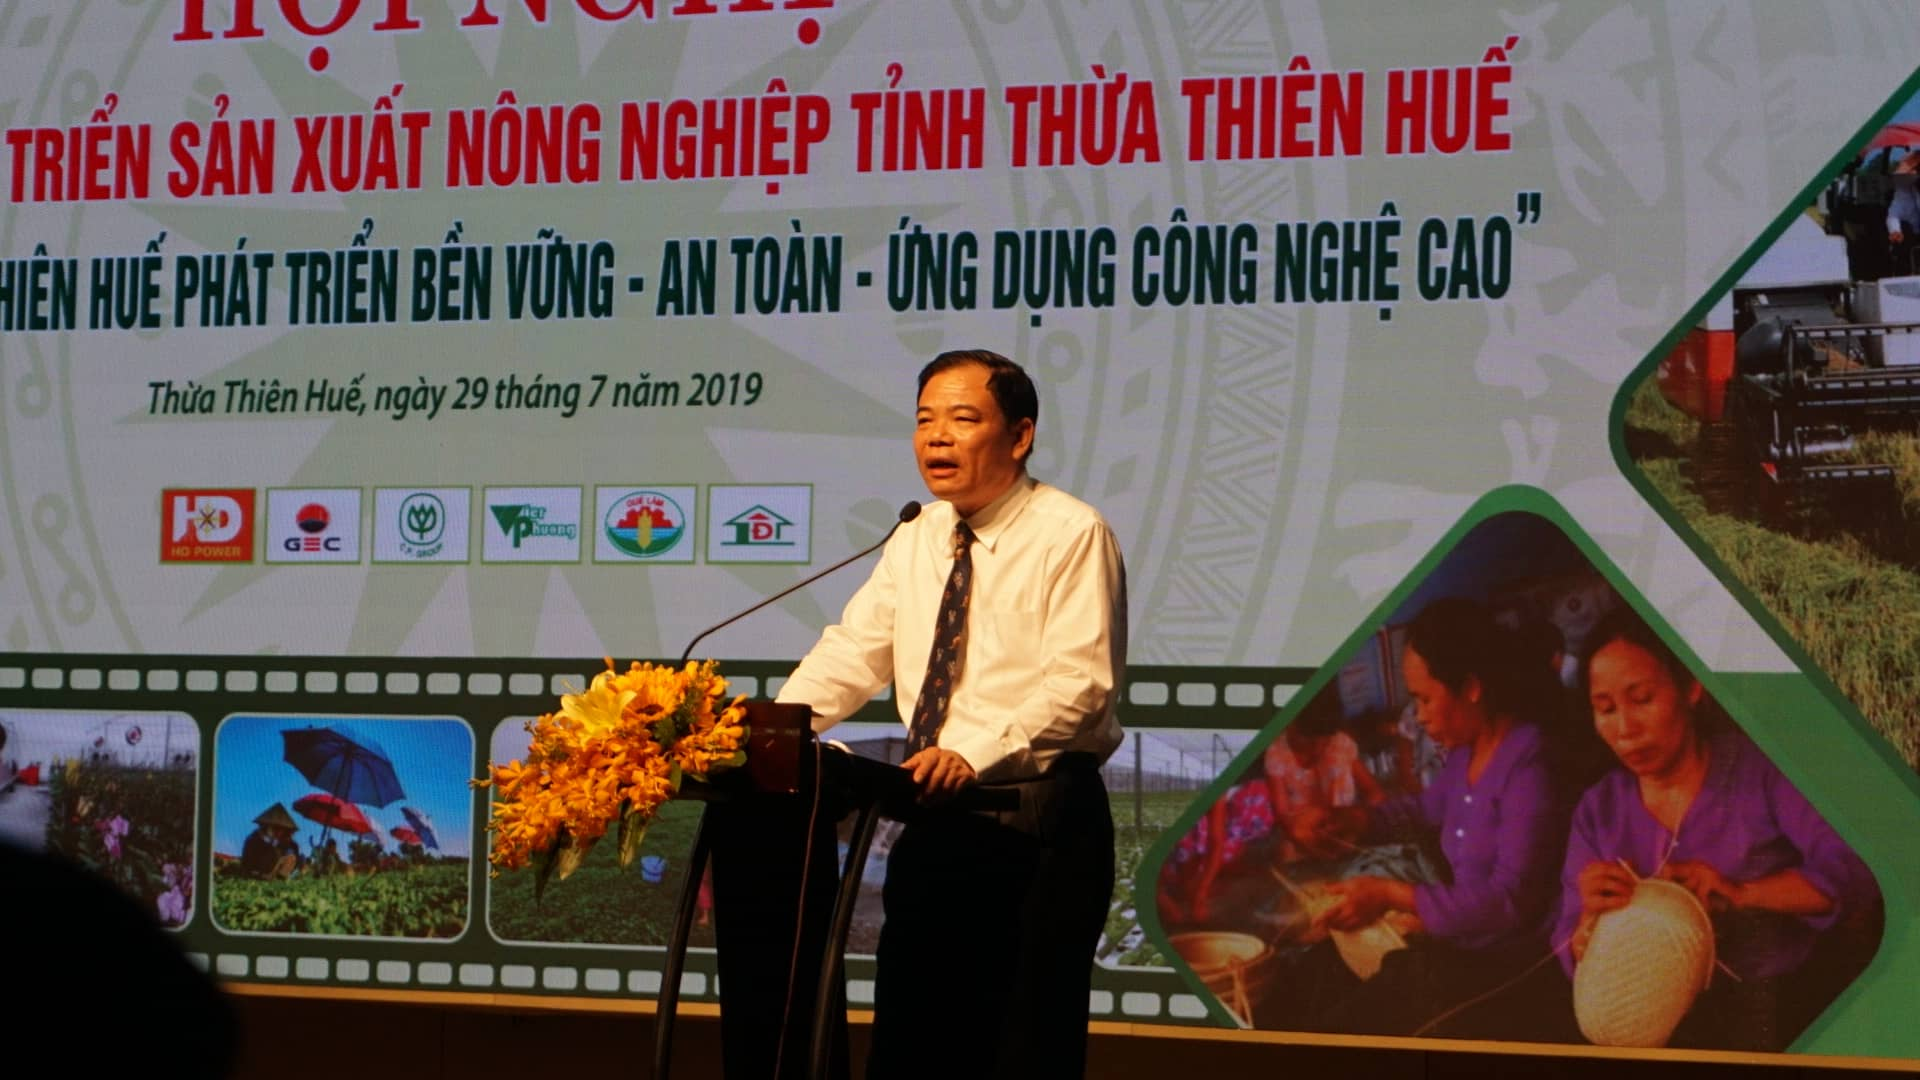 bo truong nnptnt: nong nghiep hue can gan voi am thuc cung dinh hinh anh 1